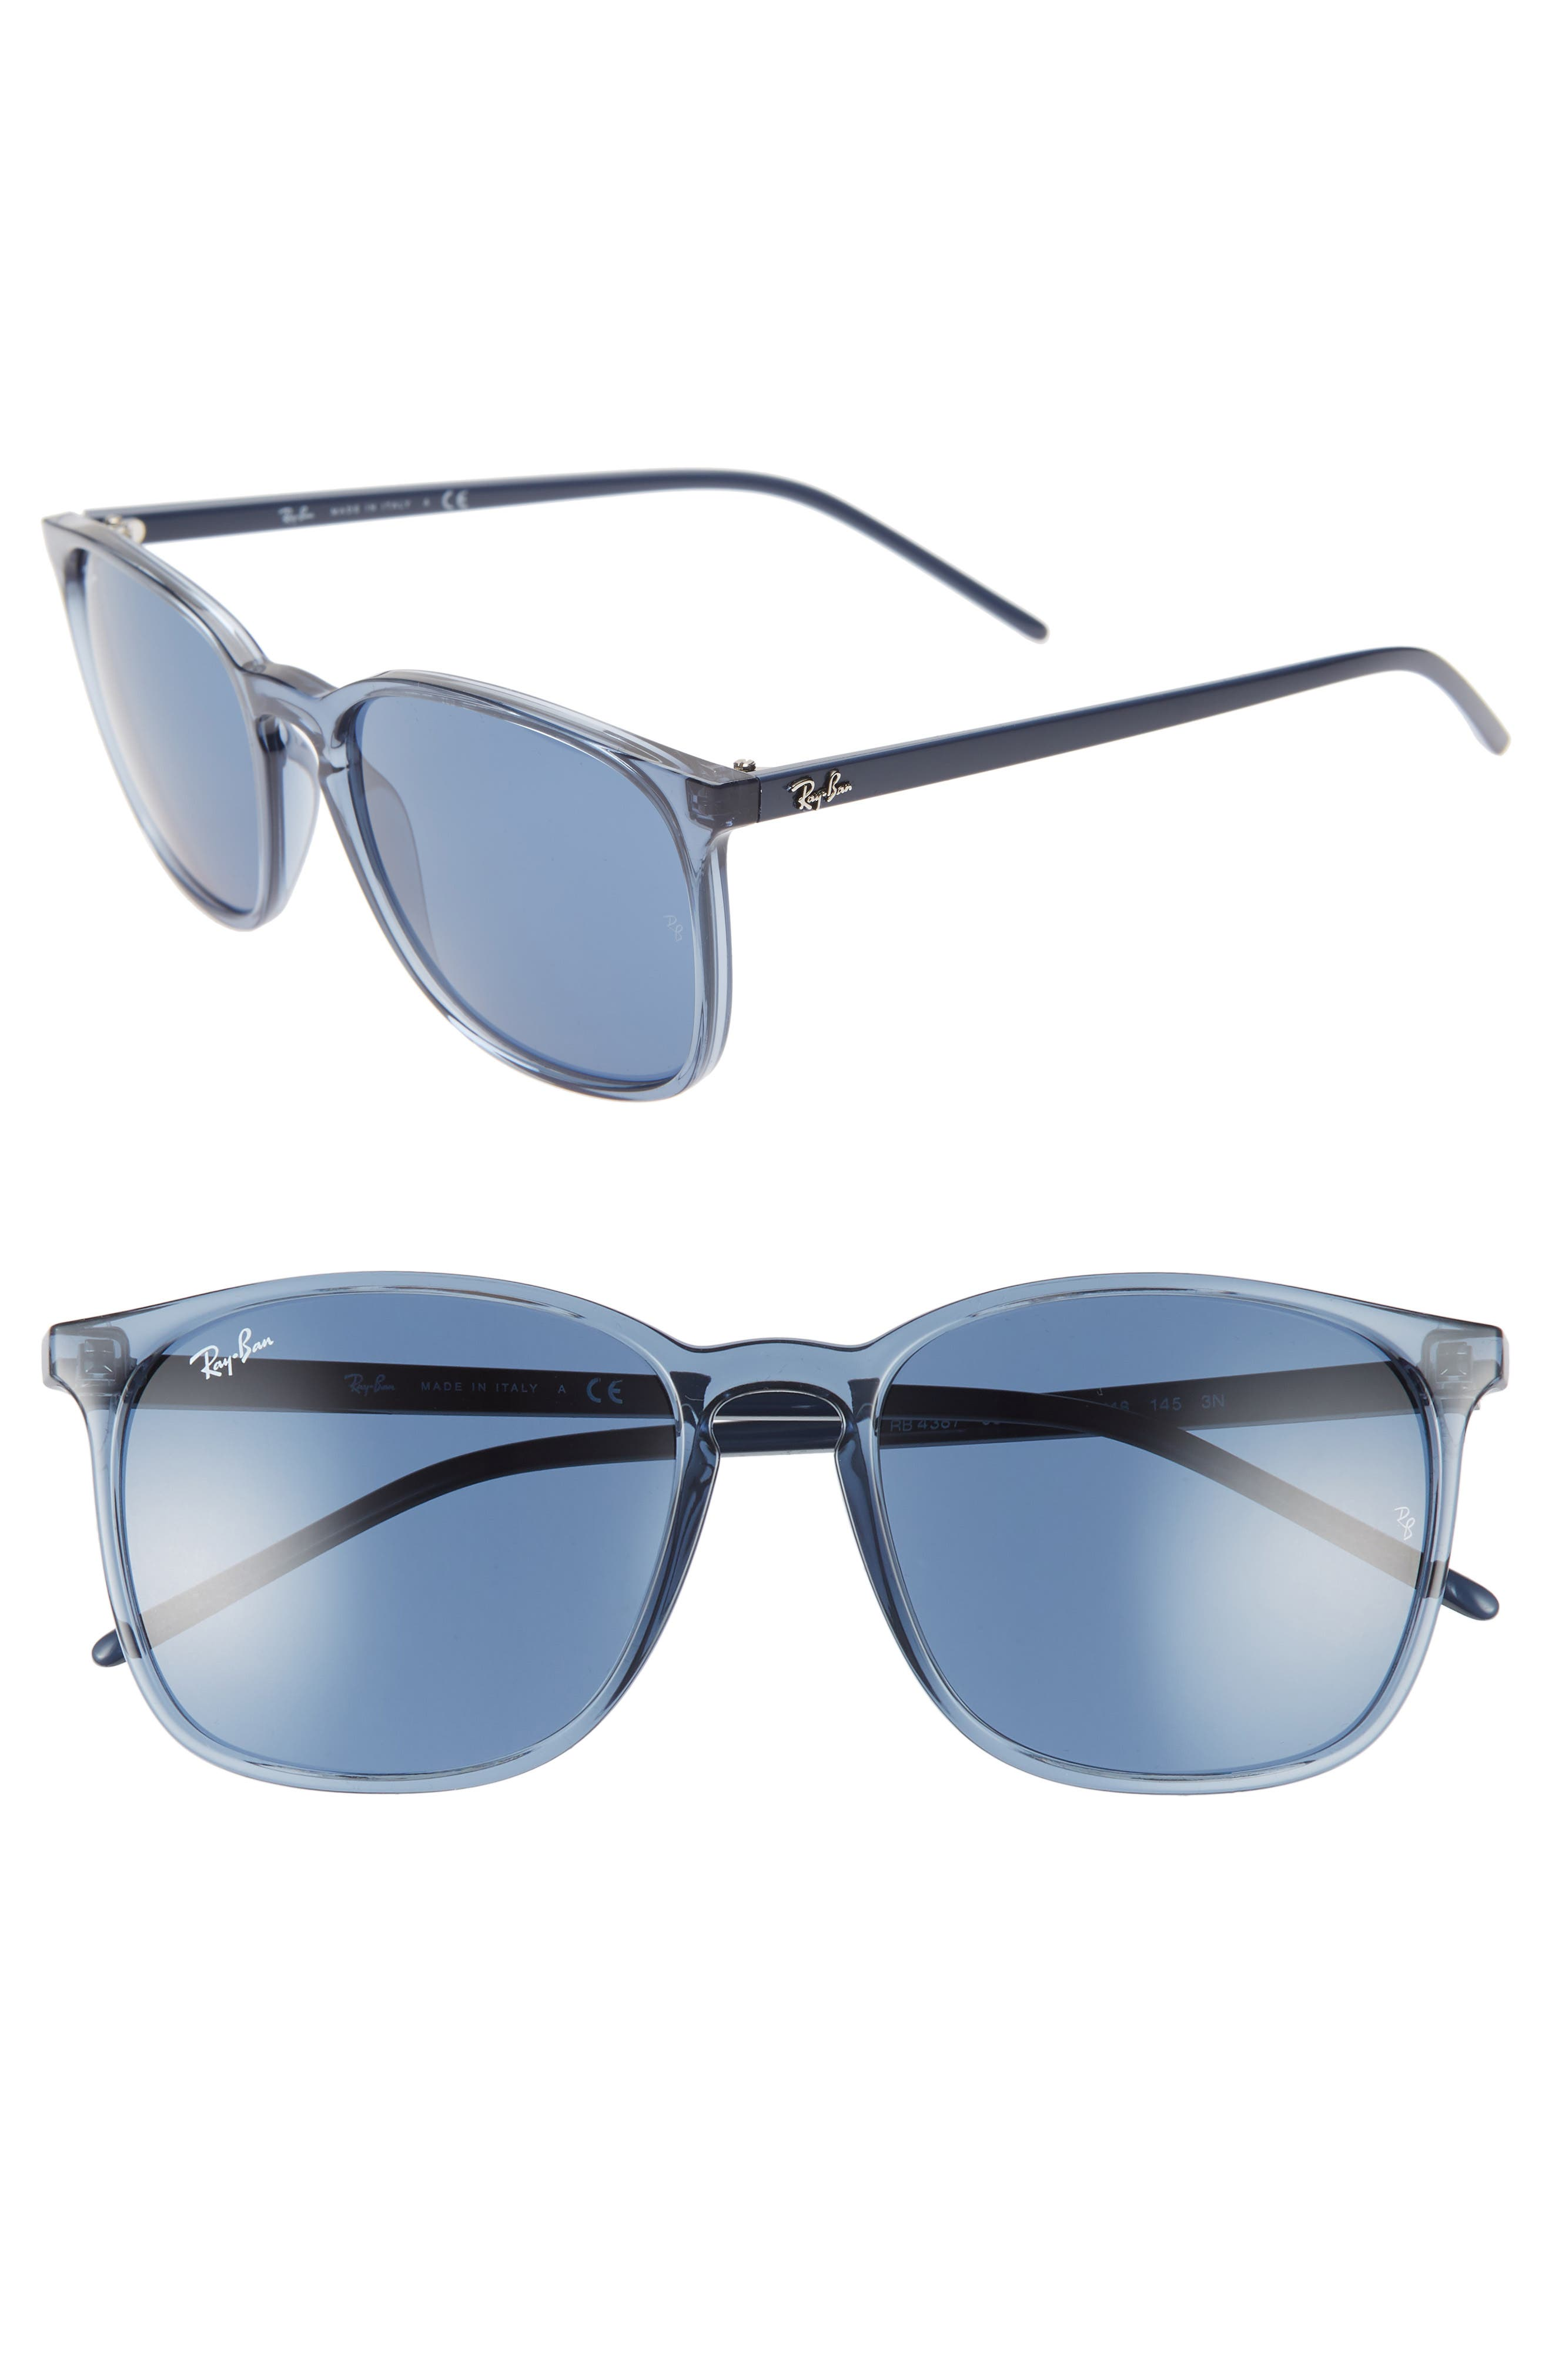 82fdf51700192 Ray-Ban 5m Sunglasses - Transparent Blue Solid